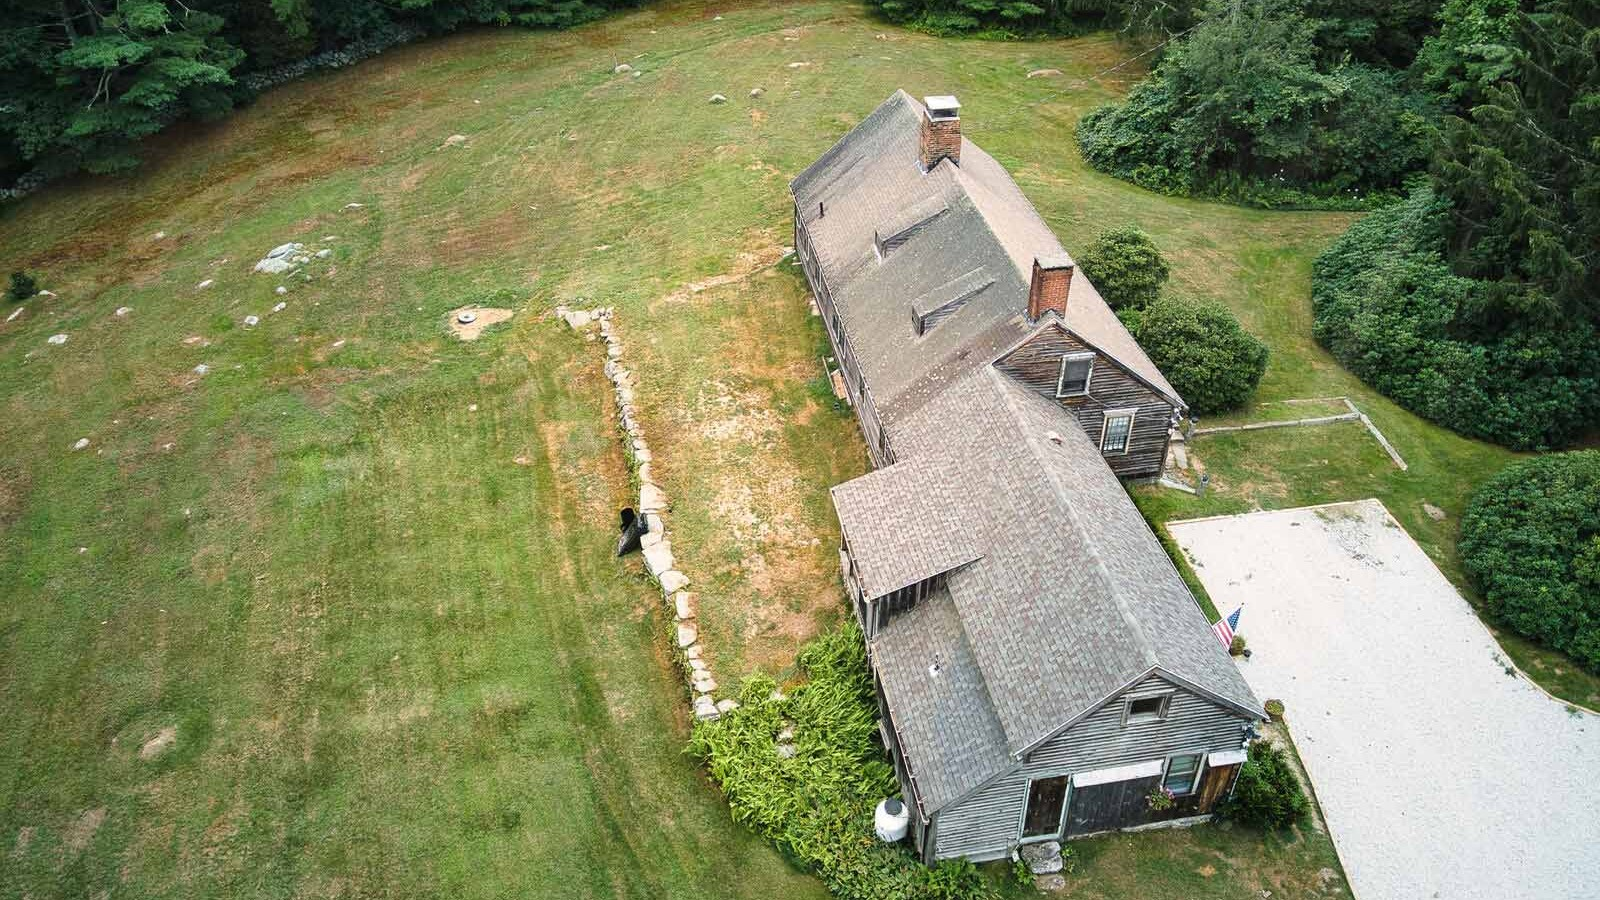 Conjuring-Haus in Burrillville